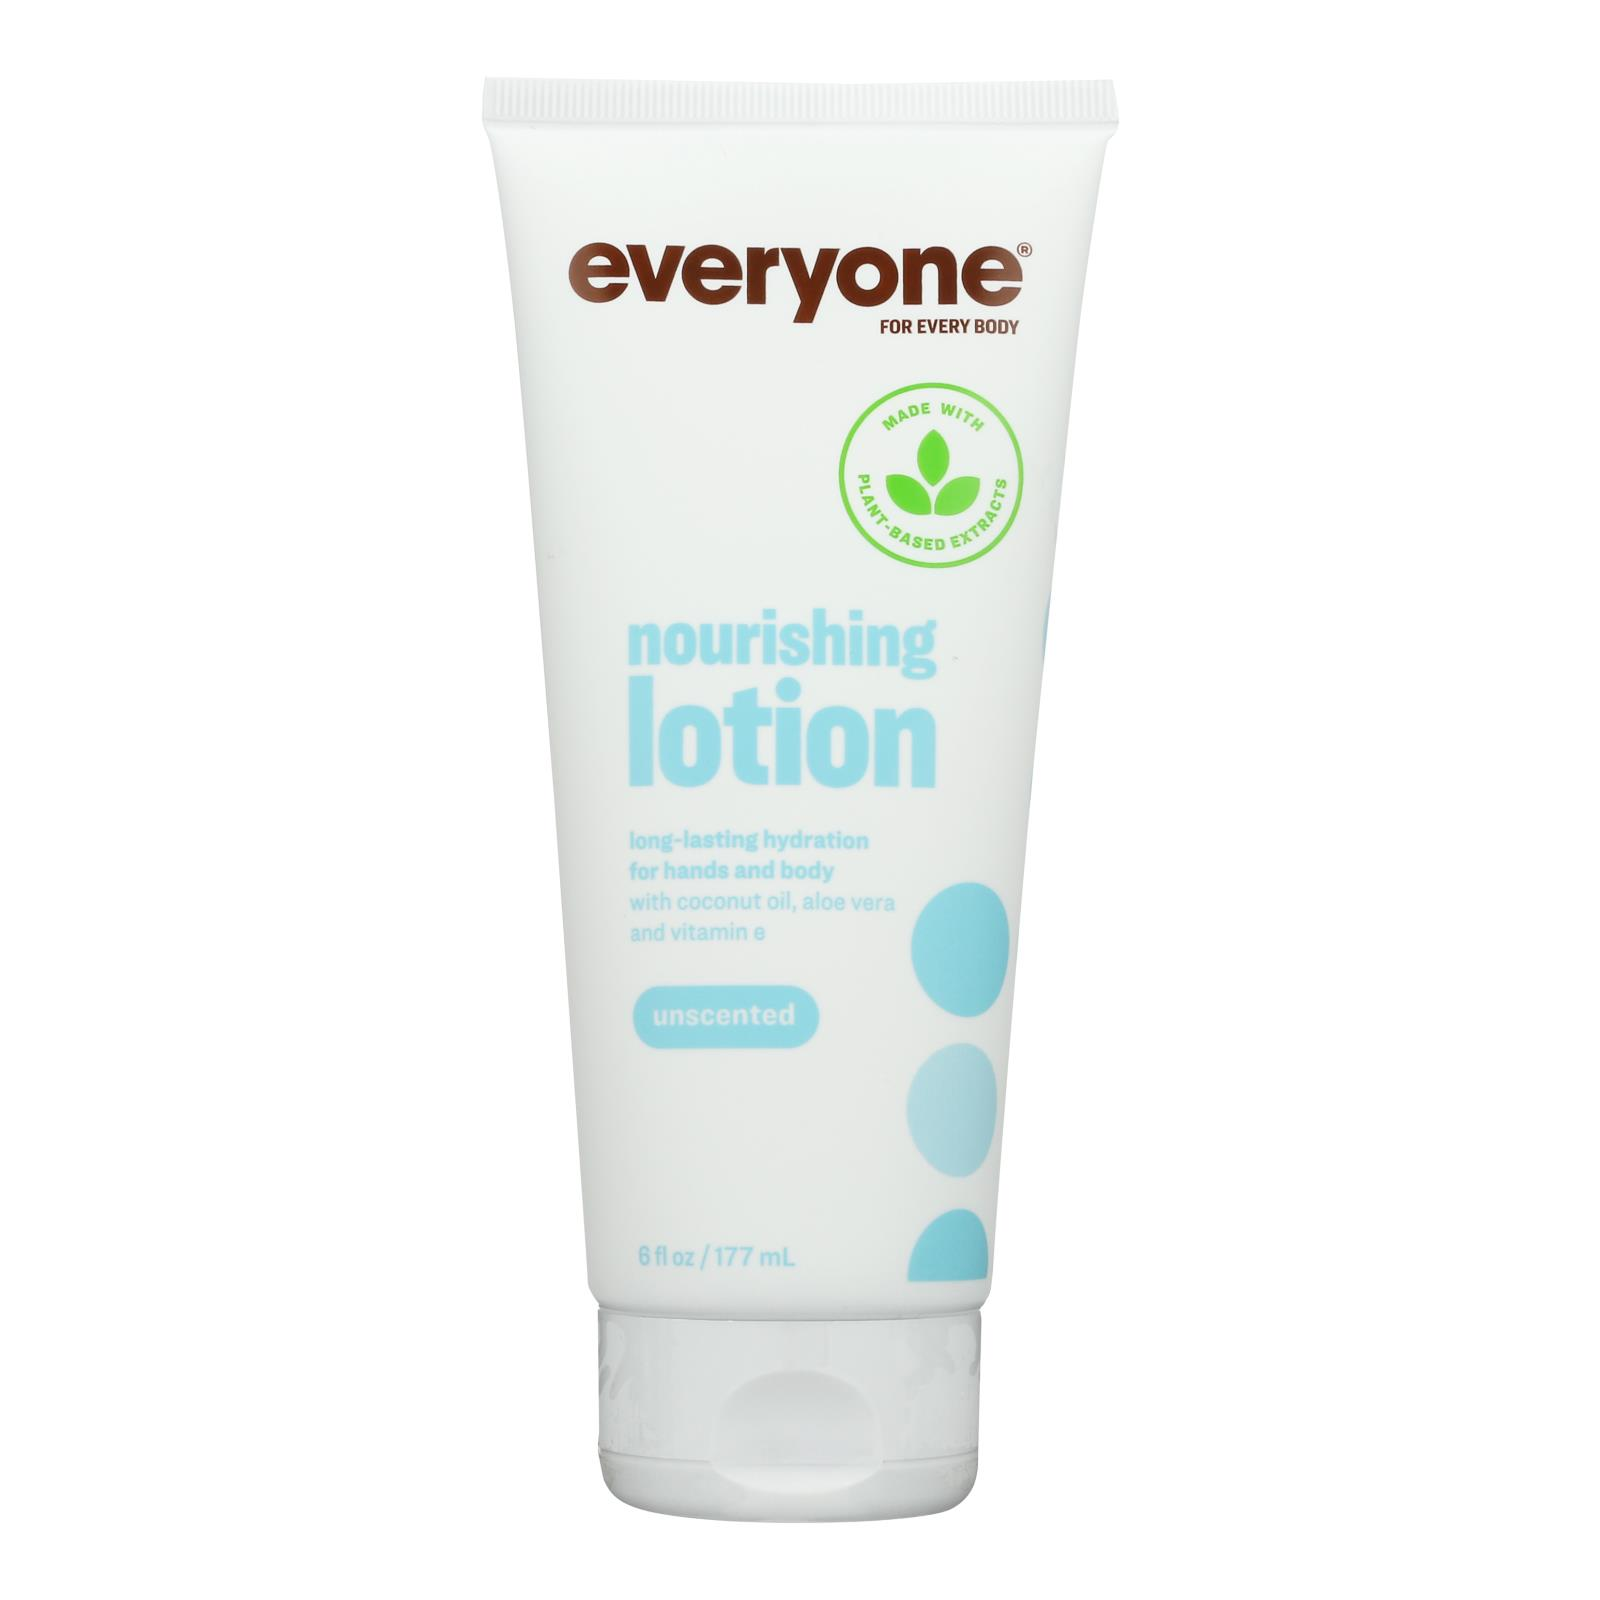 Everyone Lotion - Unscented - 6 oz